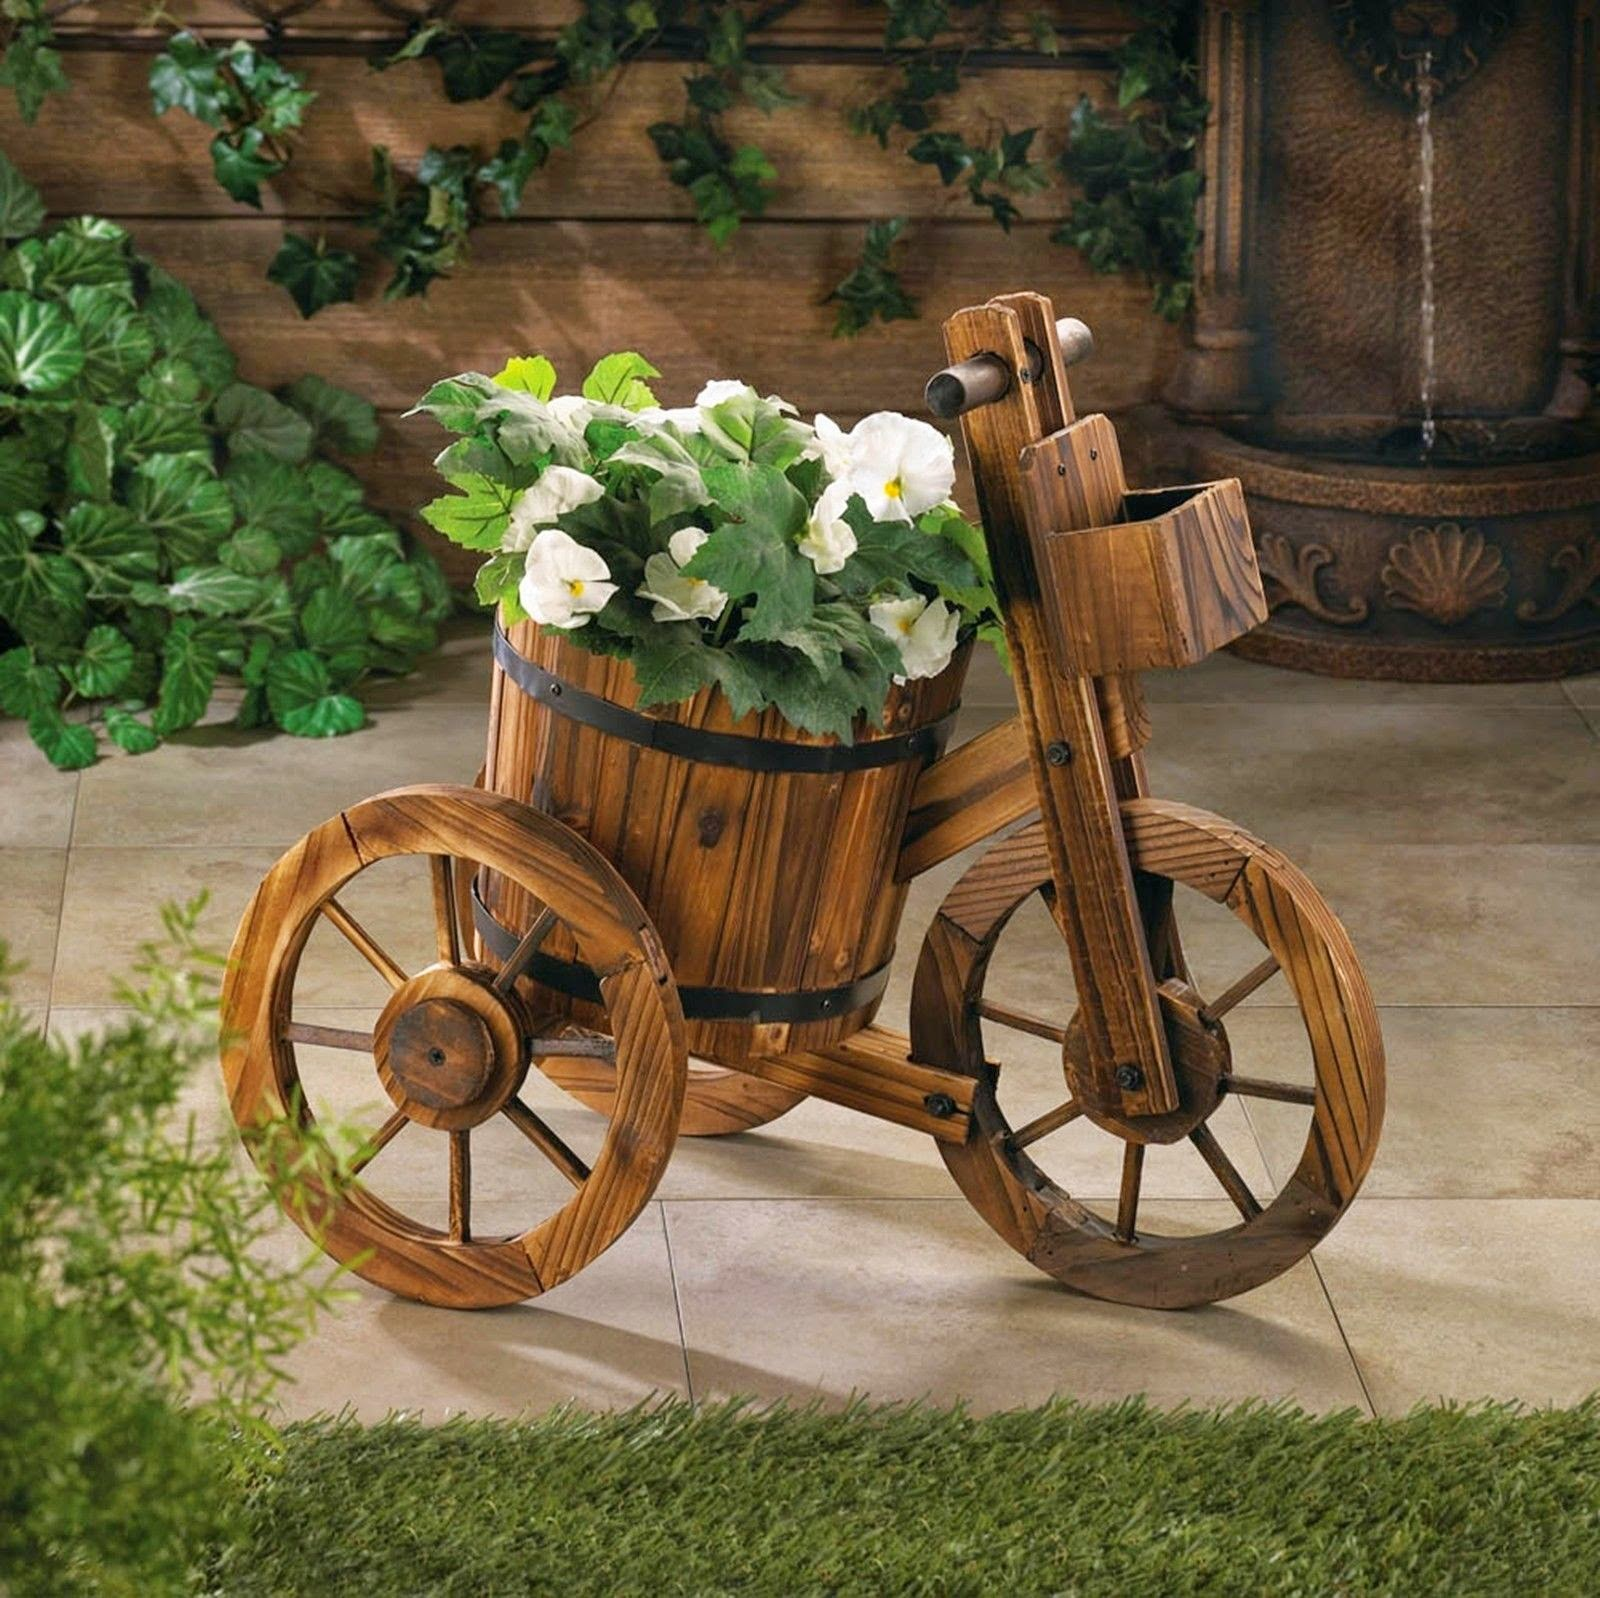 wood tricycle plant holder design ideas